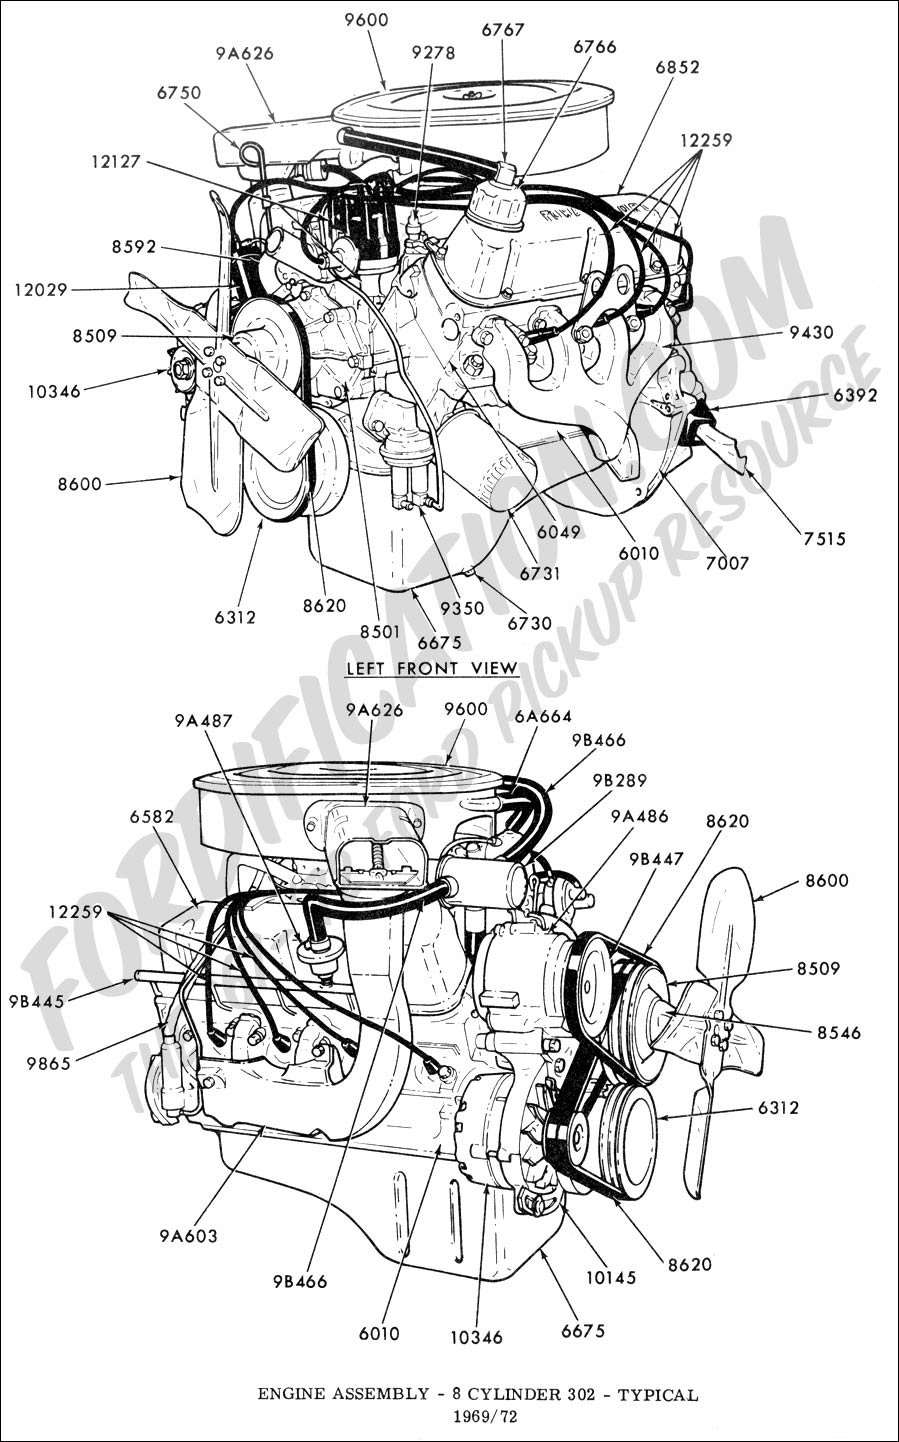 1989 Ford Ranger Fuel System Diagram Simple Guide About Wiring 1988 Truck Technical Drawings And Schematics Section E Line